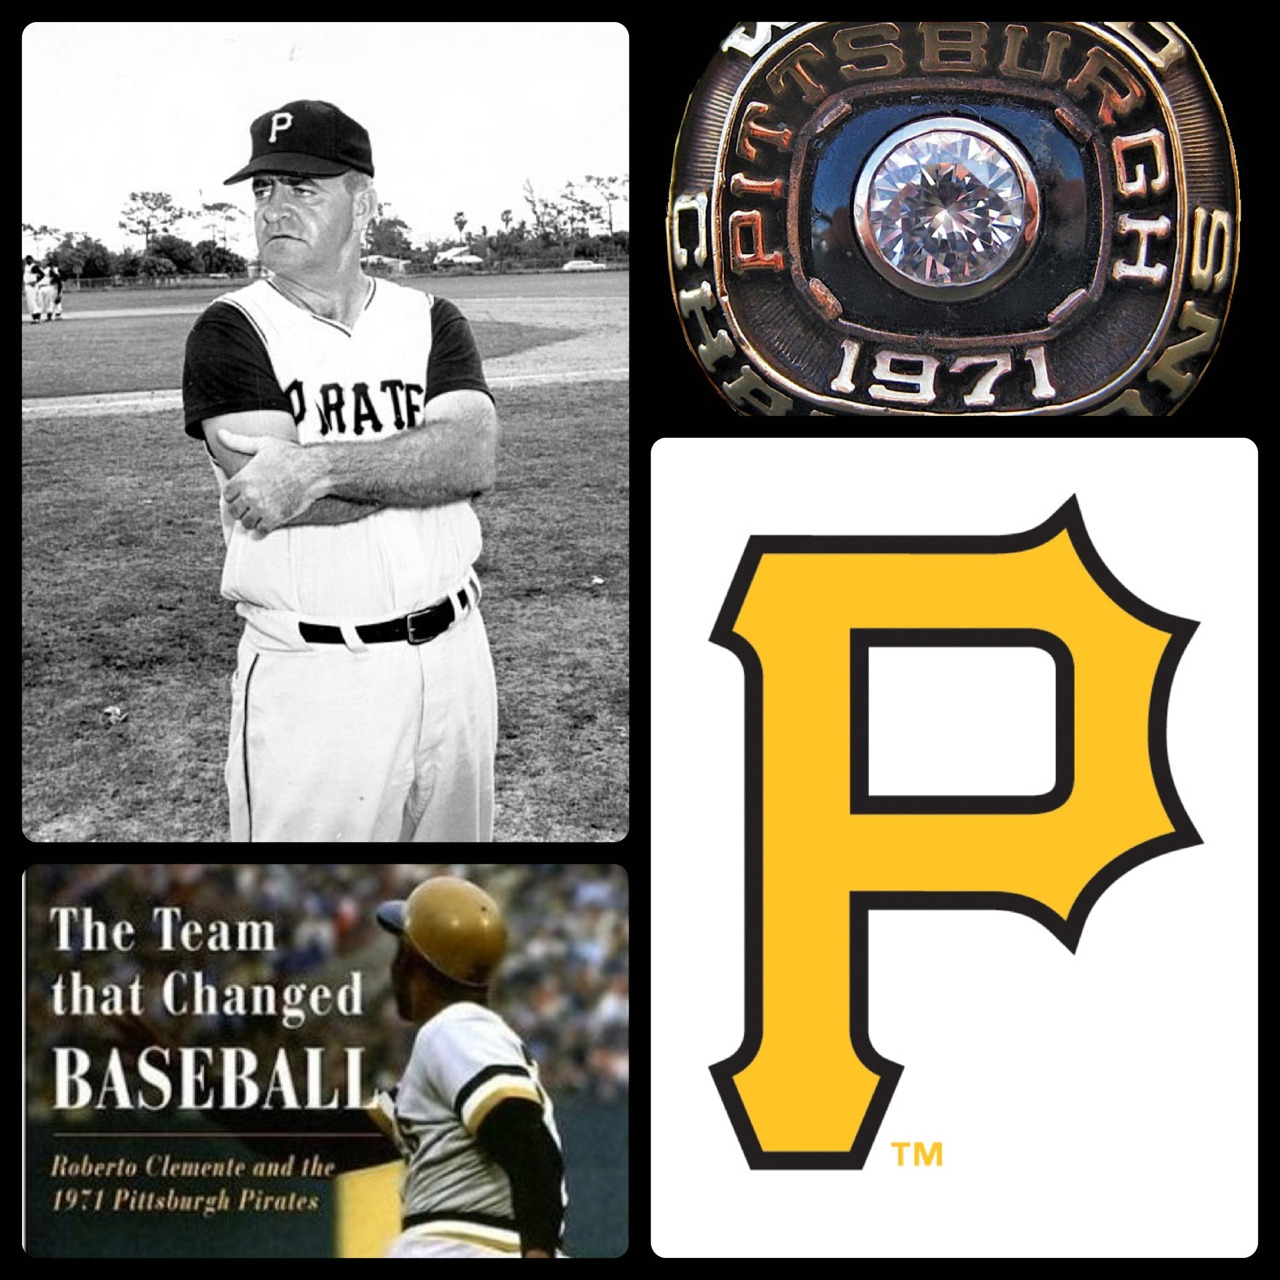 This Day In Baseball History: September 1,1971 - Danny Murtaugh of the Pittsburgh Pirates gave his lineup card to the umpire with the names of nine black baseball players on it. This was a first for Major League Baseball.  keepinitrealsports.tumblr.com  pinterest.com/mysterkeepinit  Instagram - @Myster_Keepinit  Twitter - @MysterKeepinit  keepinitrealsports.wordpress.com  flickr.com/keepinit_real_sports